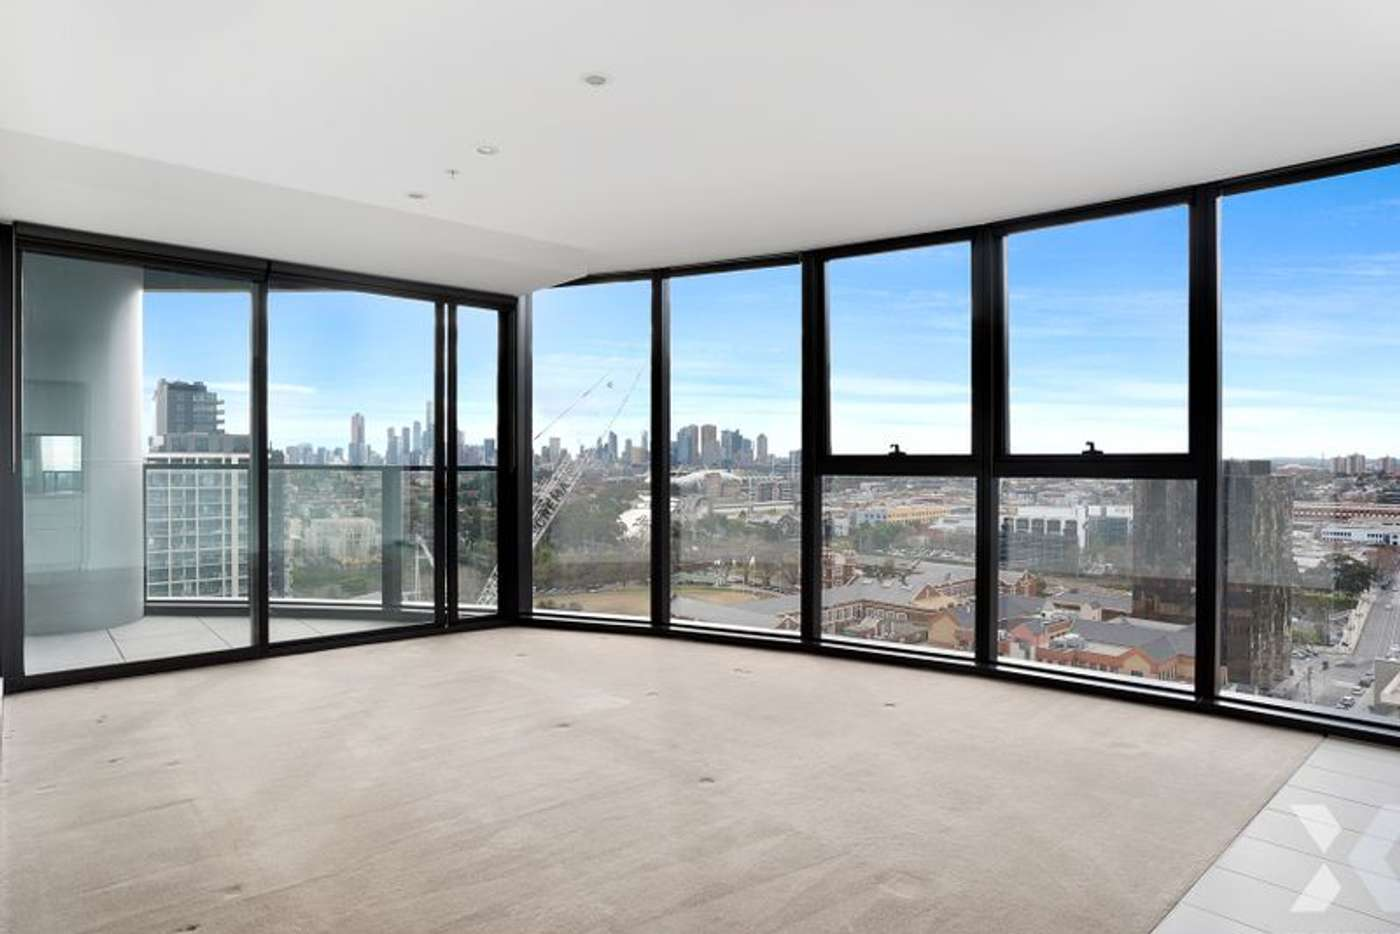 Main view of Homely apartment listing, 2606/35 Malcolm Street, South Yarra VIC 3141